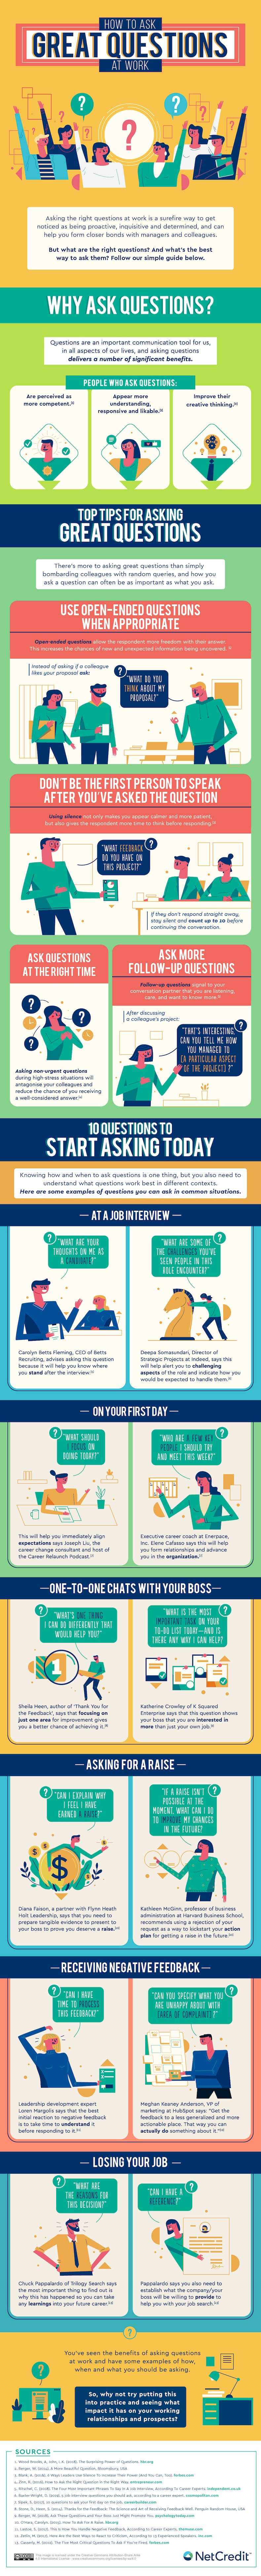 How To Ask Great Questions At Work